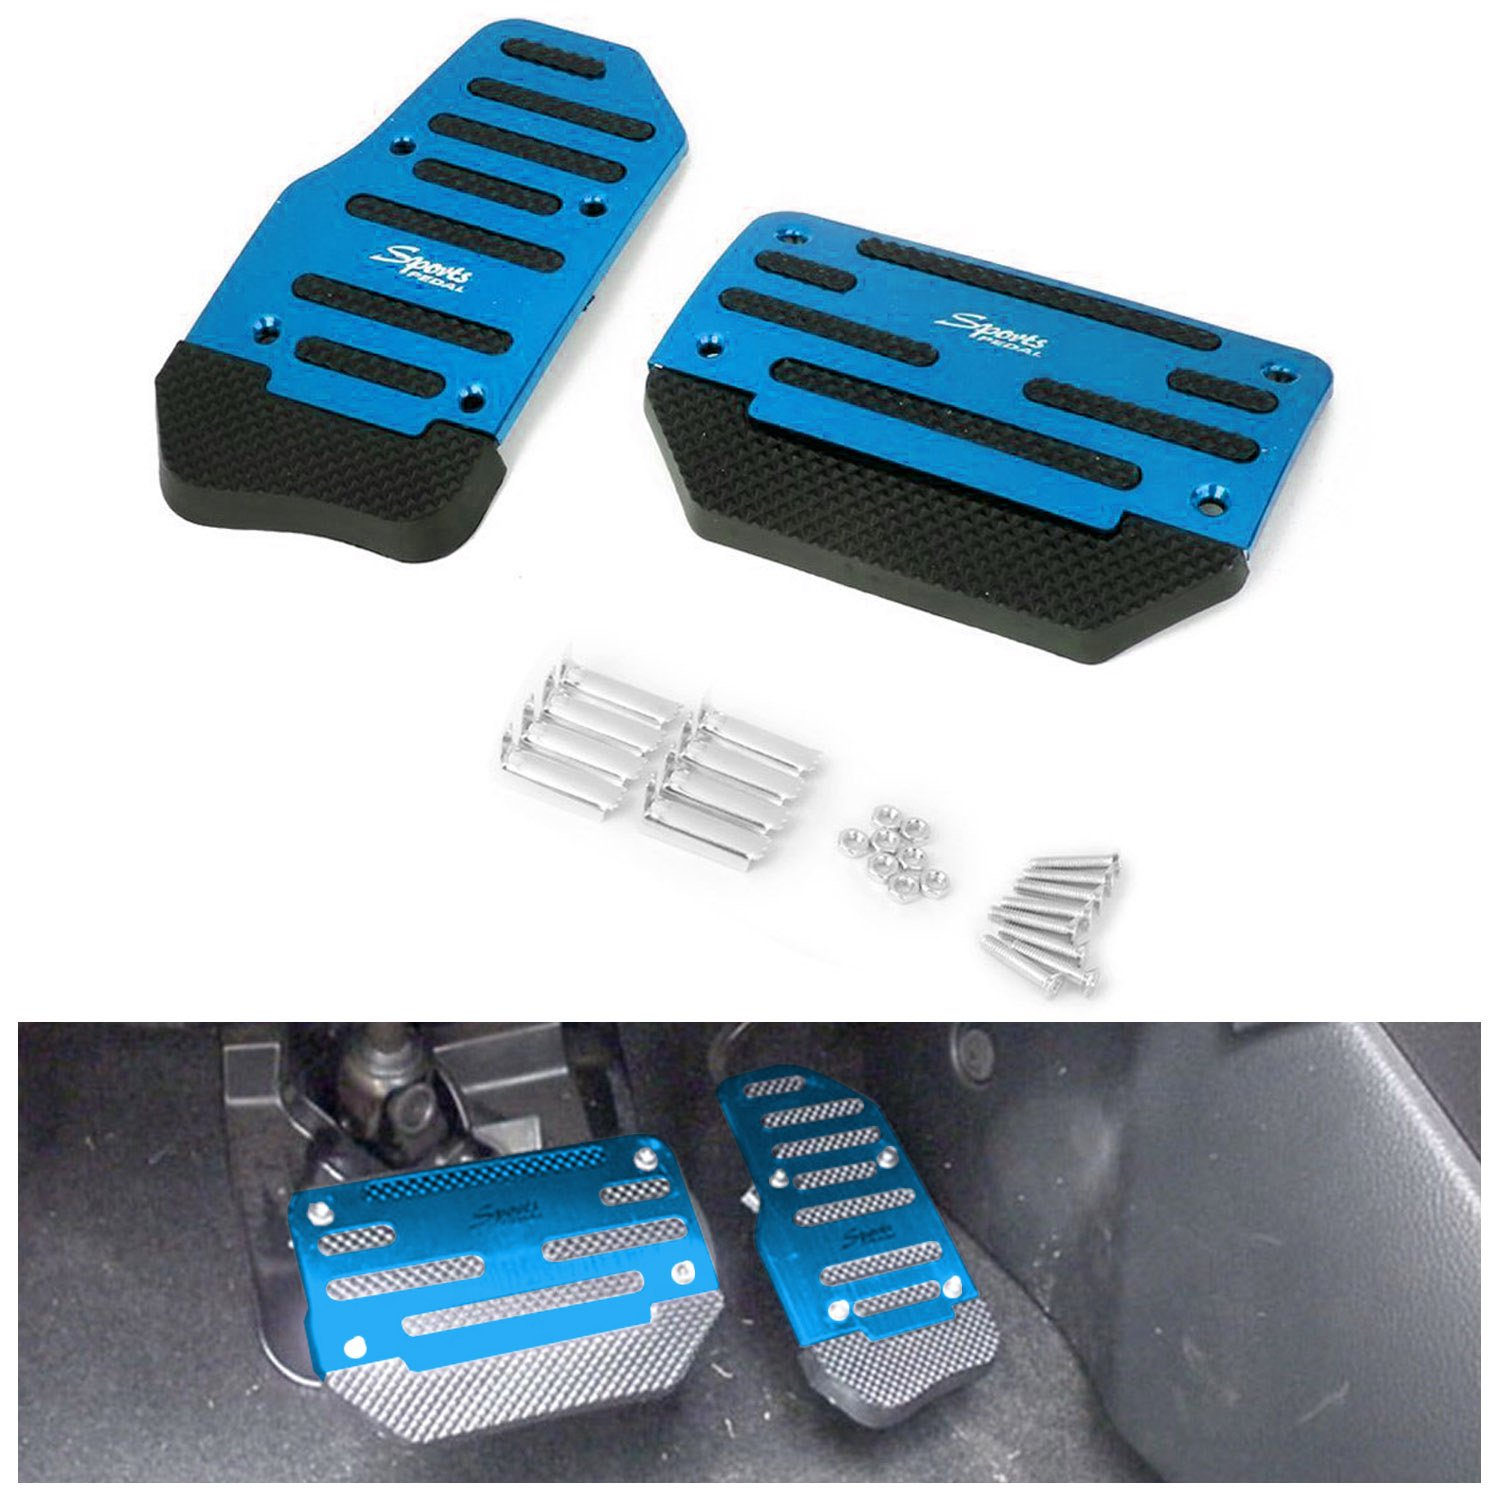 AUTOPDR slip Car Brake Accelerator Gas Pedals Pads Covers Foot Brake Extenders Cover Pad Automotive Kick Panels for Car Auto Vehicle Motorcycle Aluminium (Blue-automate)